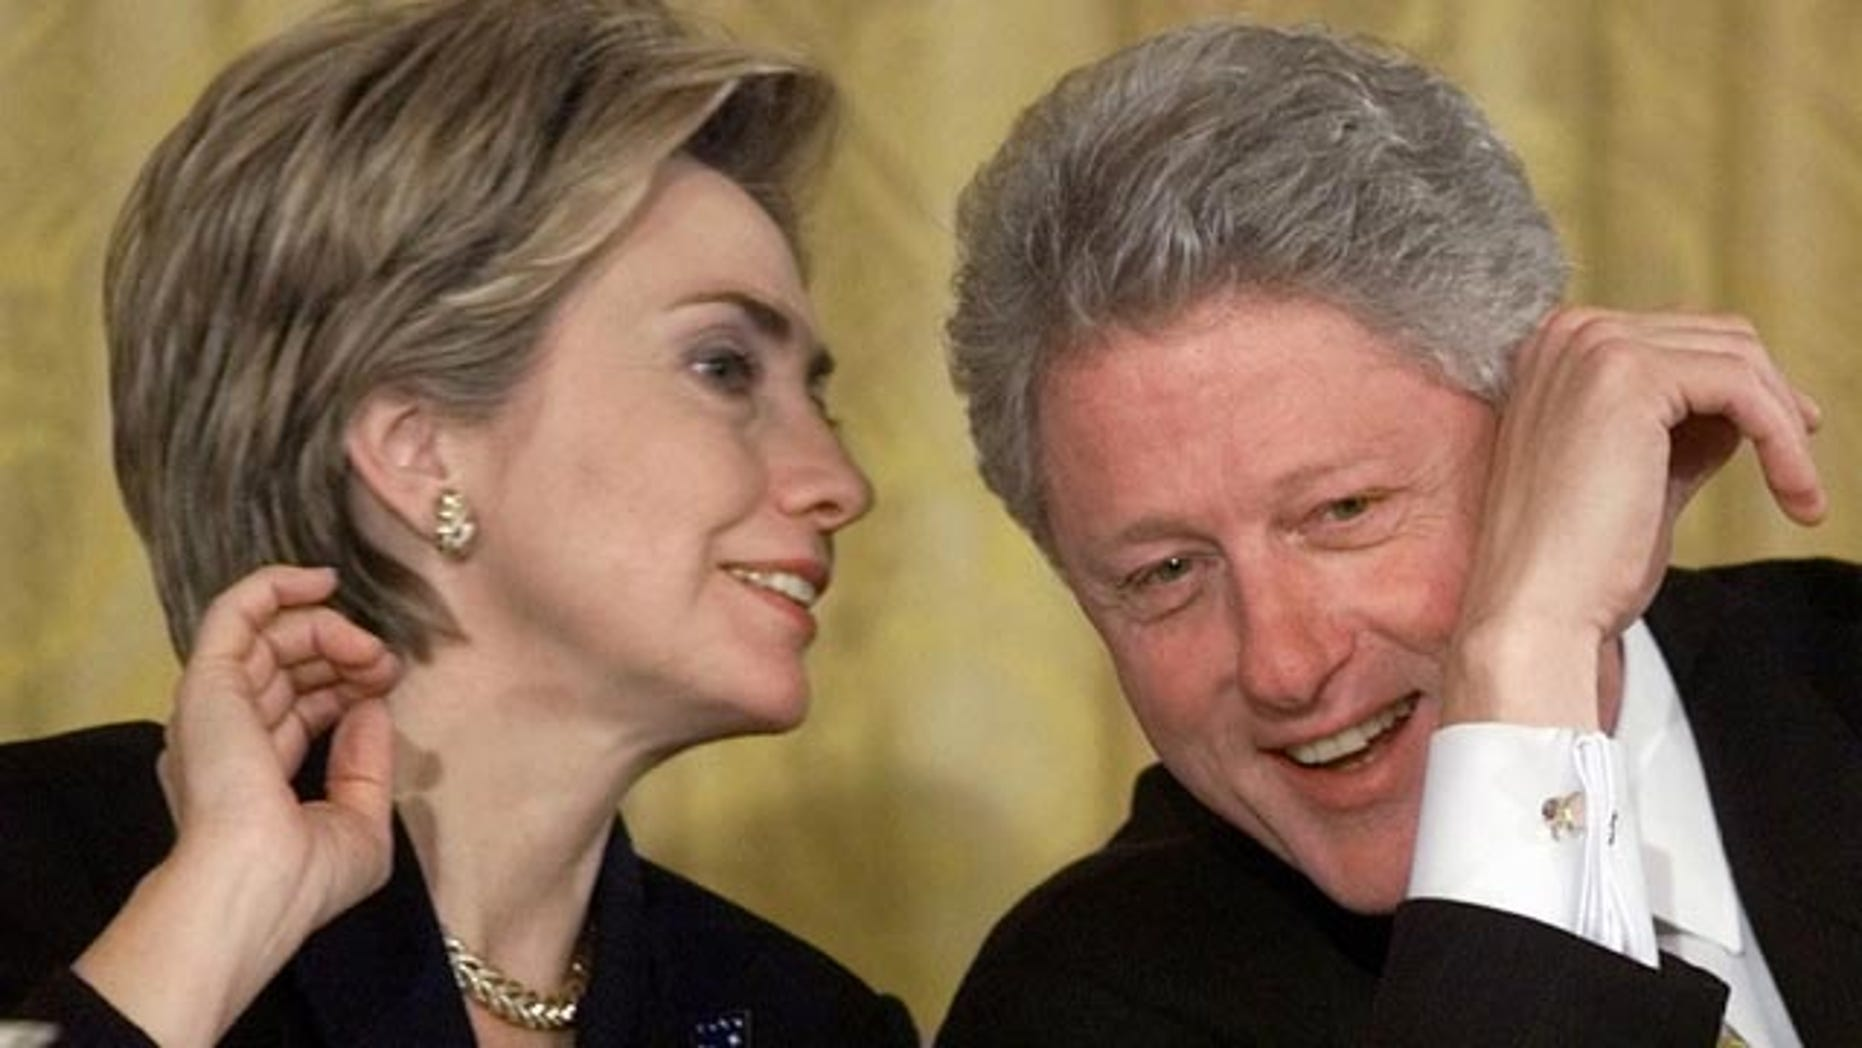 FILE - In this Oct. 22, 1999 file photo, President Bill Clinton and first lady Hillary Rodham Clinton talk during the White House Conference on Philanthropy in the East Room of the White House in Washington. As first lady in the final year of the Clinton administration, Hillary Rodham Clinton approved the unveiling of a White House plan to push for tax breaks for private foundations and wealthy charity donors at the same time that the William J. Clinton Foundation was soliciting donations for her husbands presidential library, recently-released Clinton-era documents show. (AP Photo/Khue Bui, File)